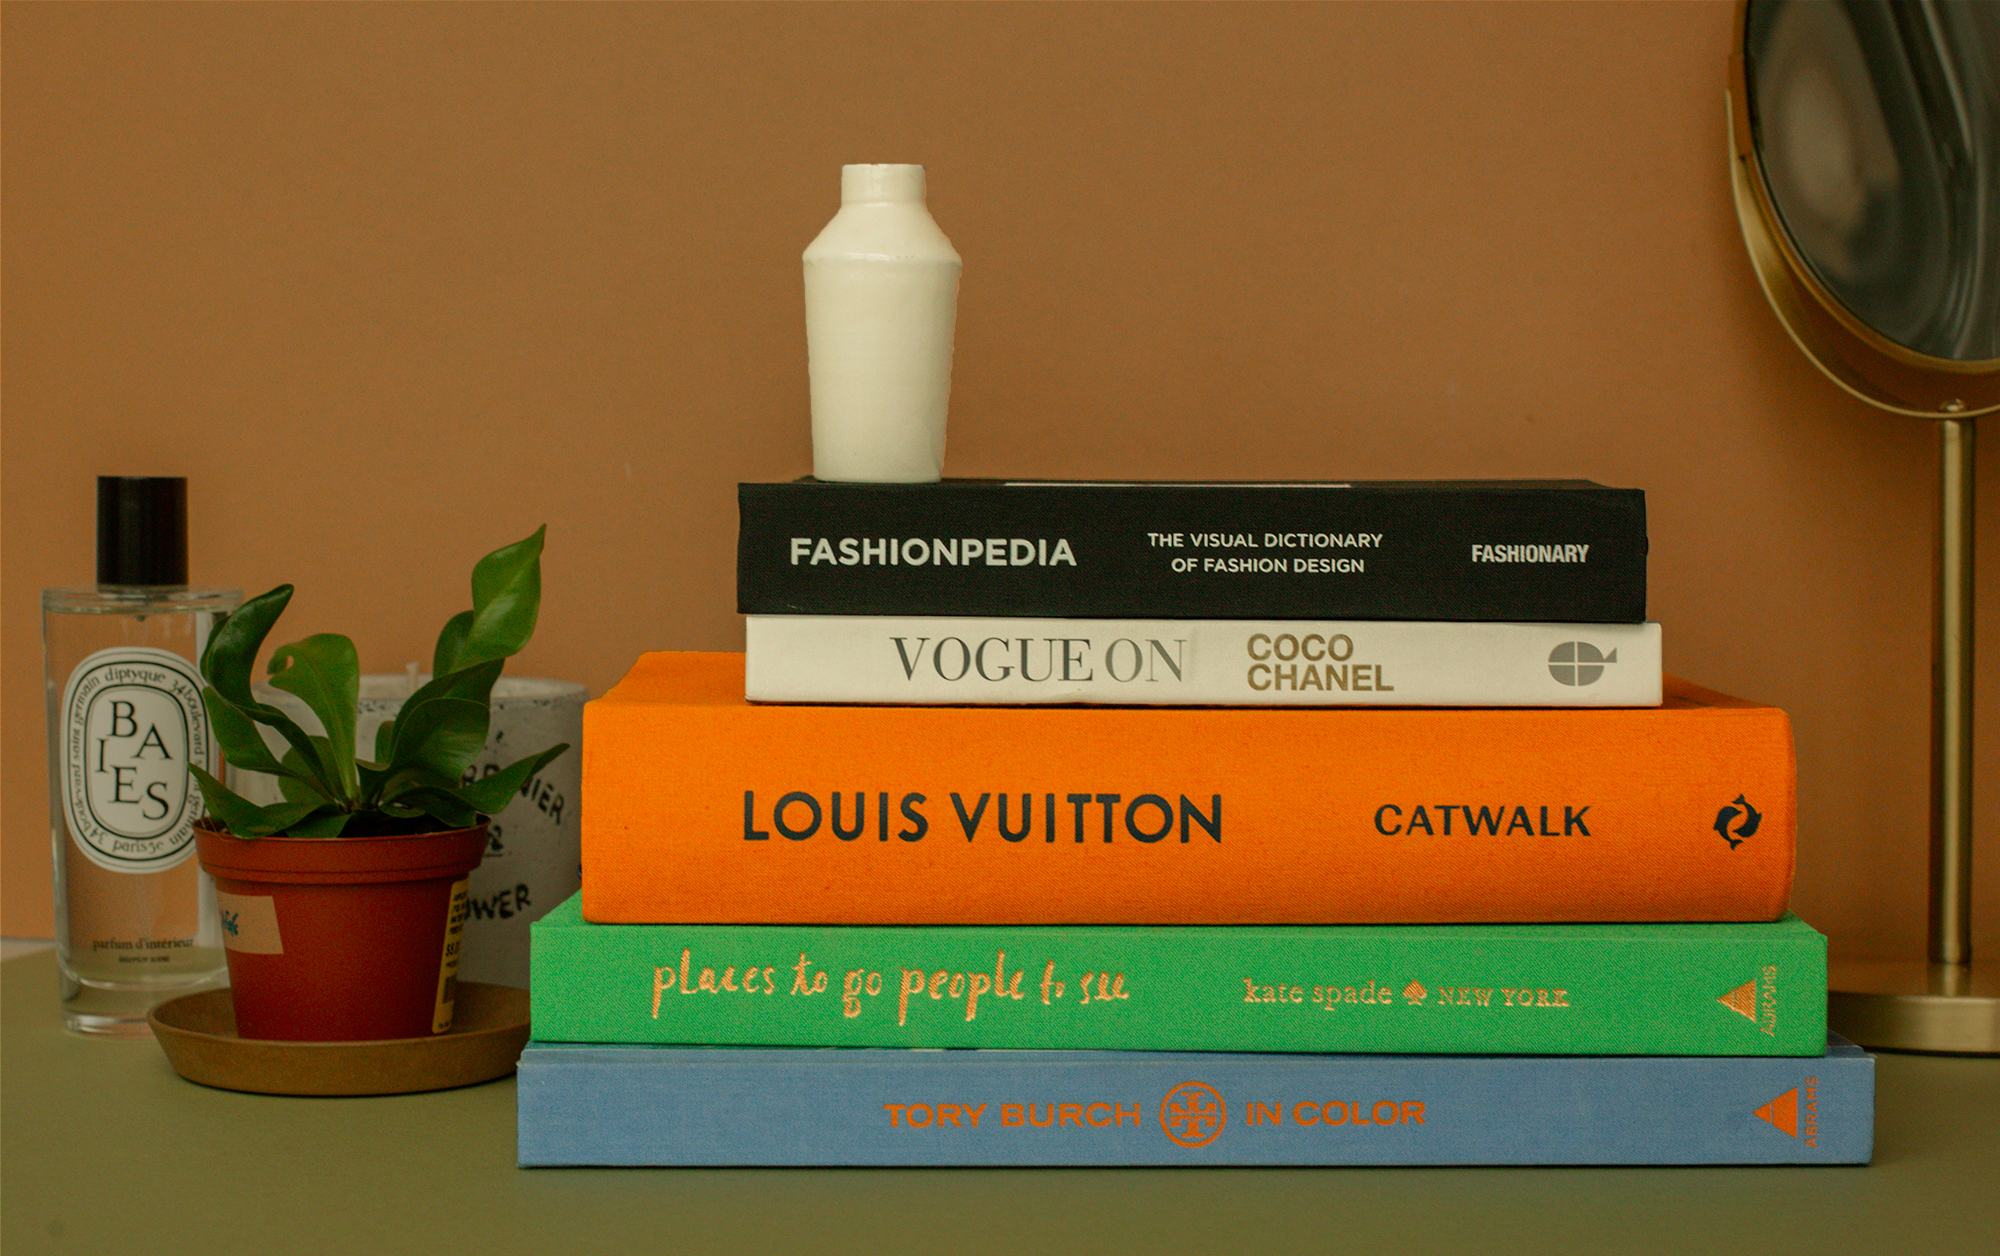 Coffee Table Books To Spruce Up A Fashion Lover's Home